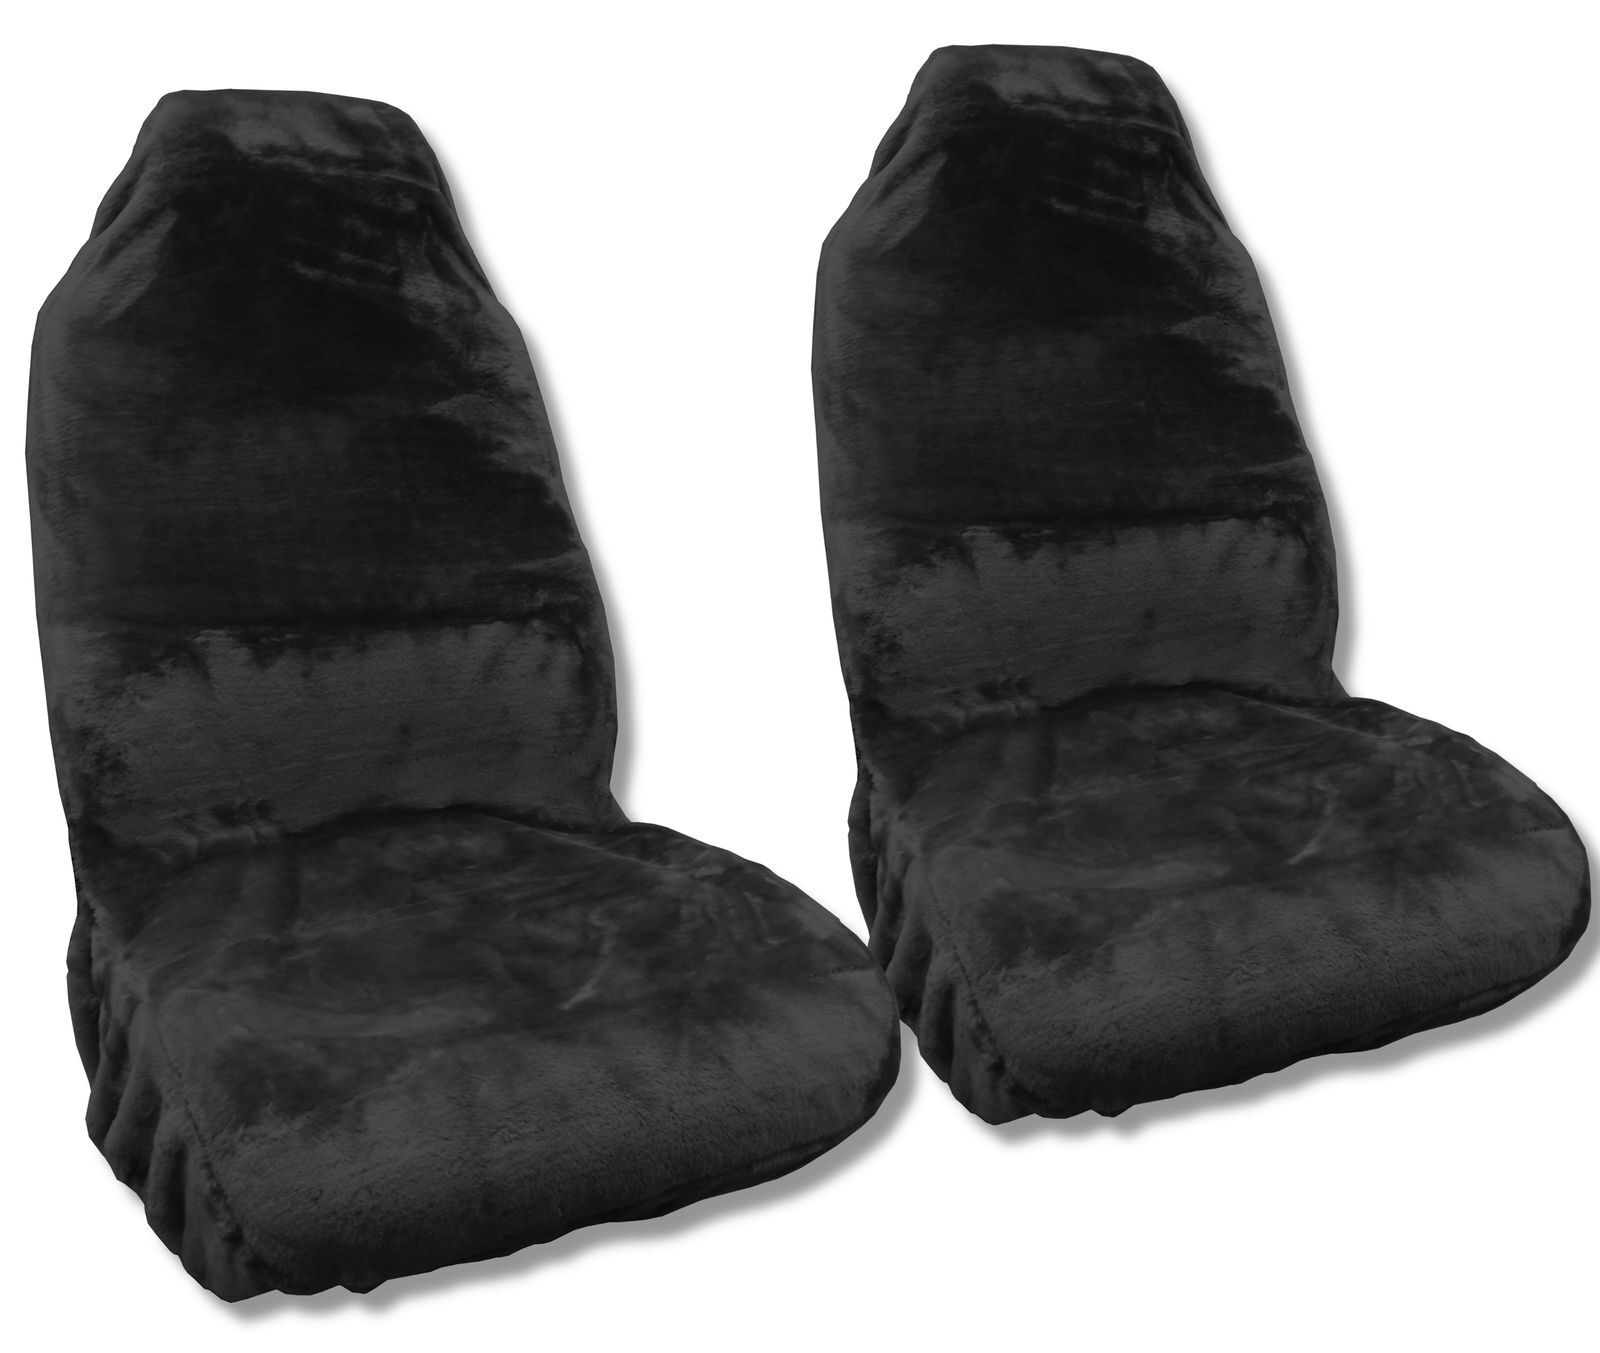 faux sheepskin seat covers pair black synthetic fleece wool plush comfort ebay. Black Bedroom Furniture Sets. Home Design Ideas